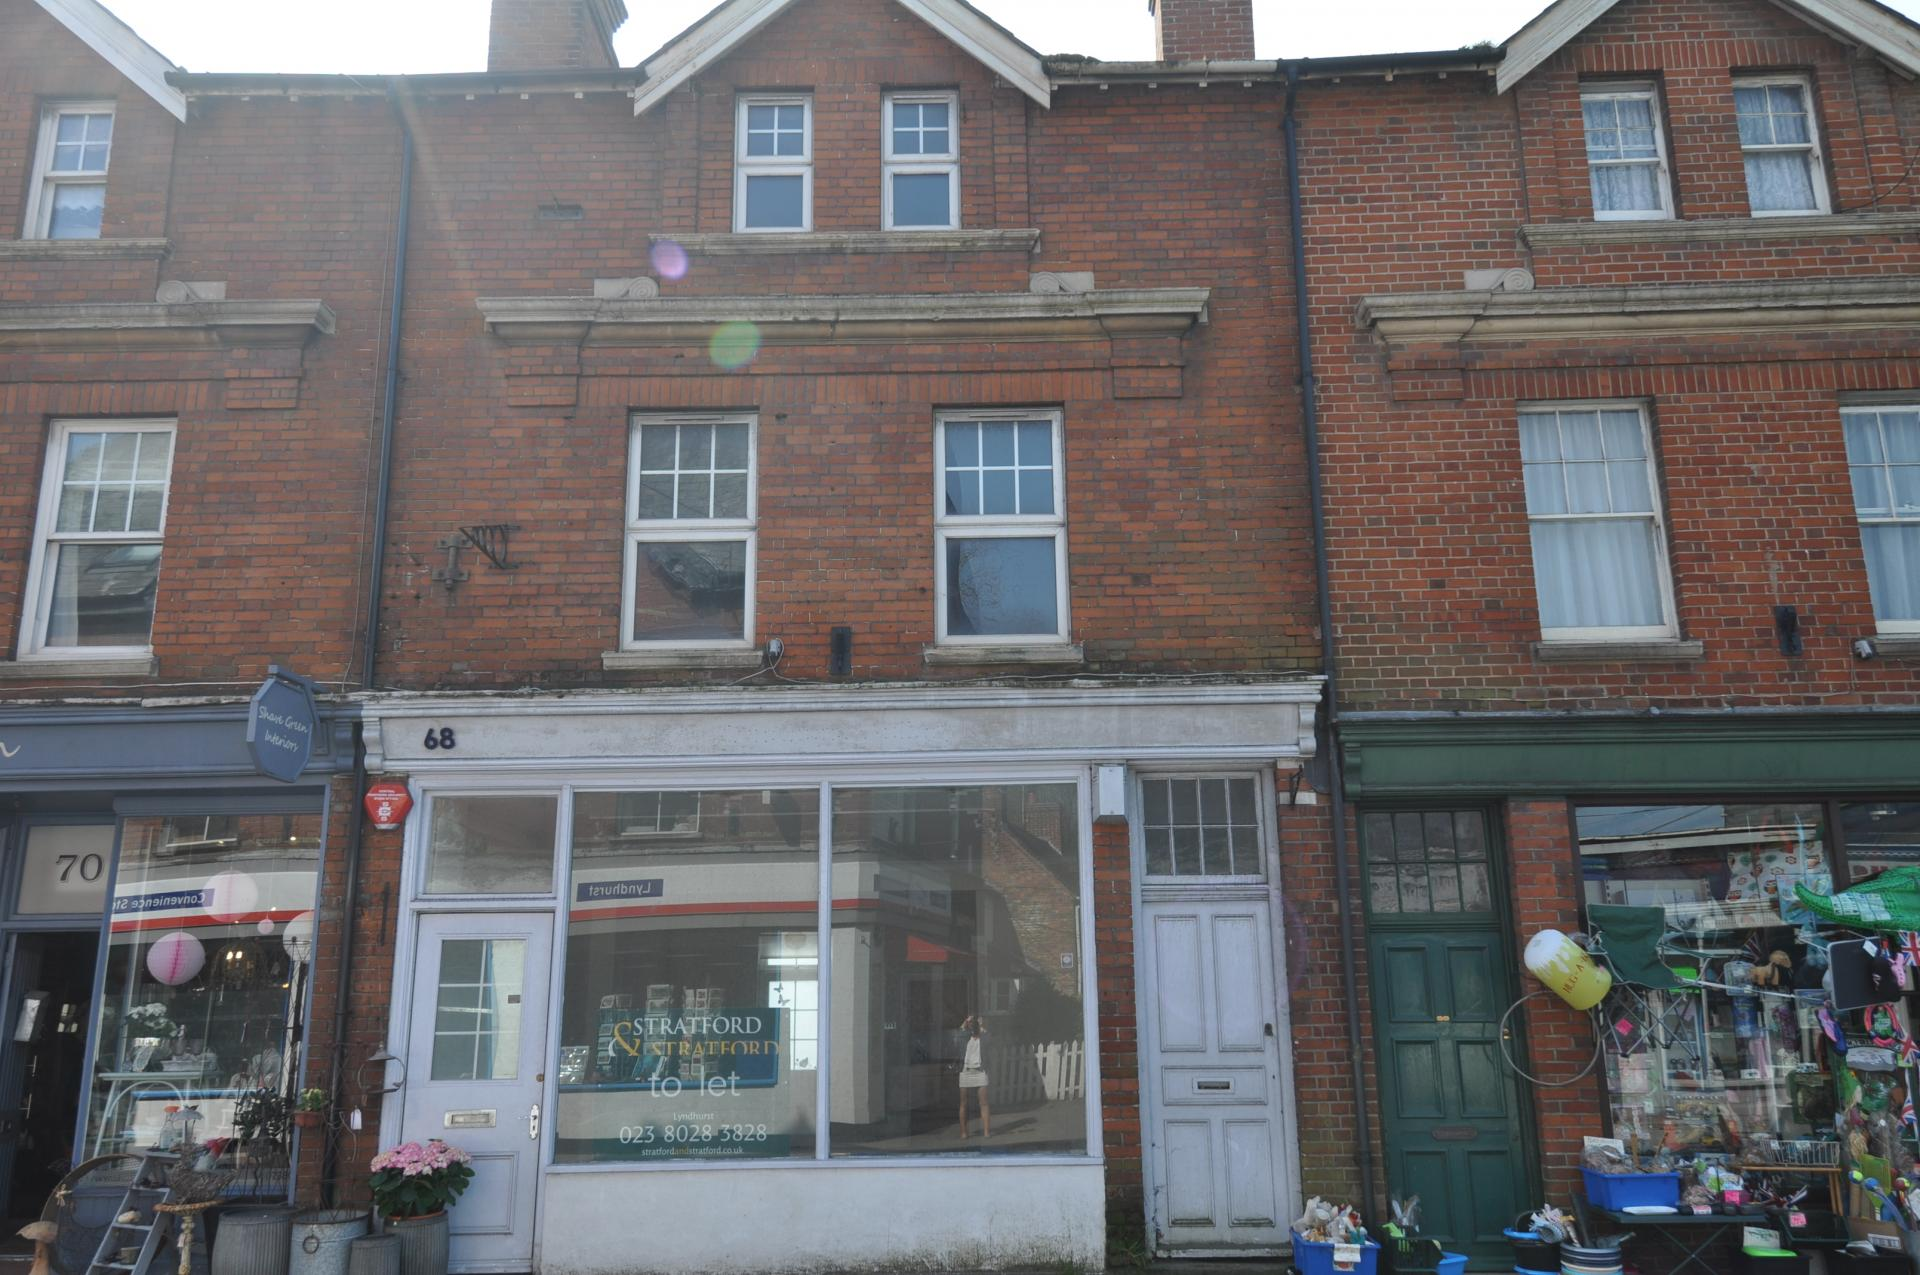 Property for sale in Lyndhurst